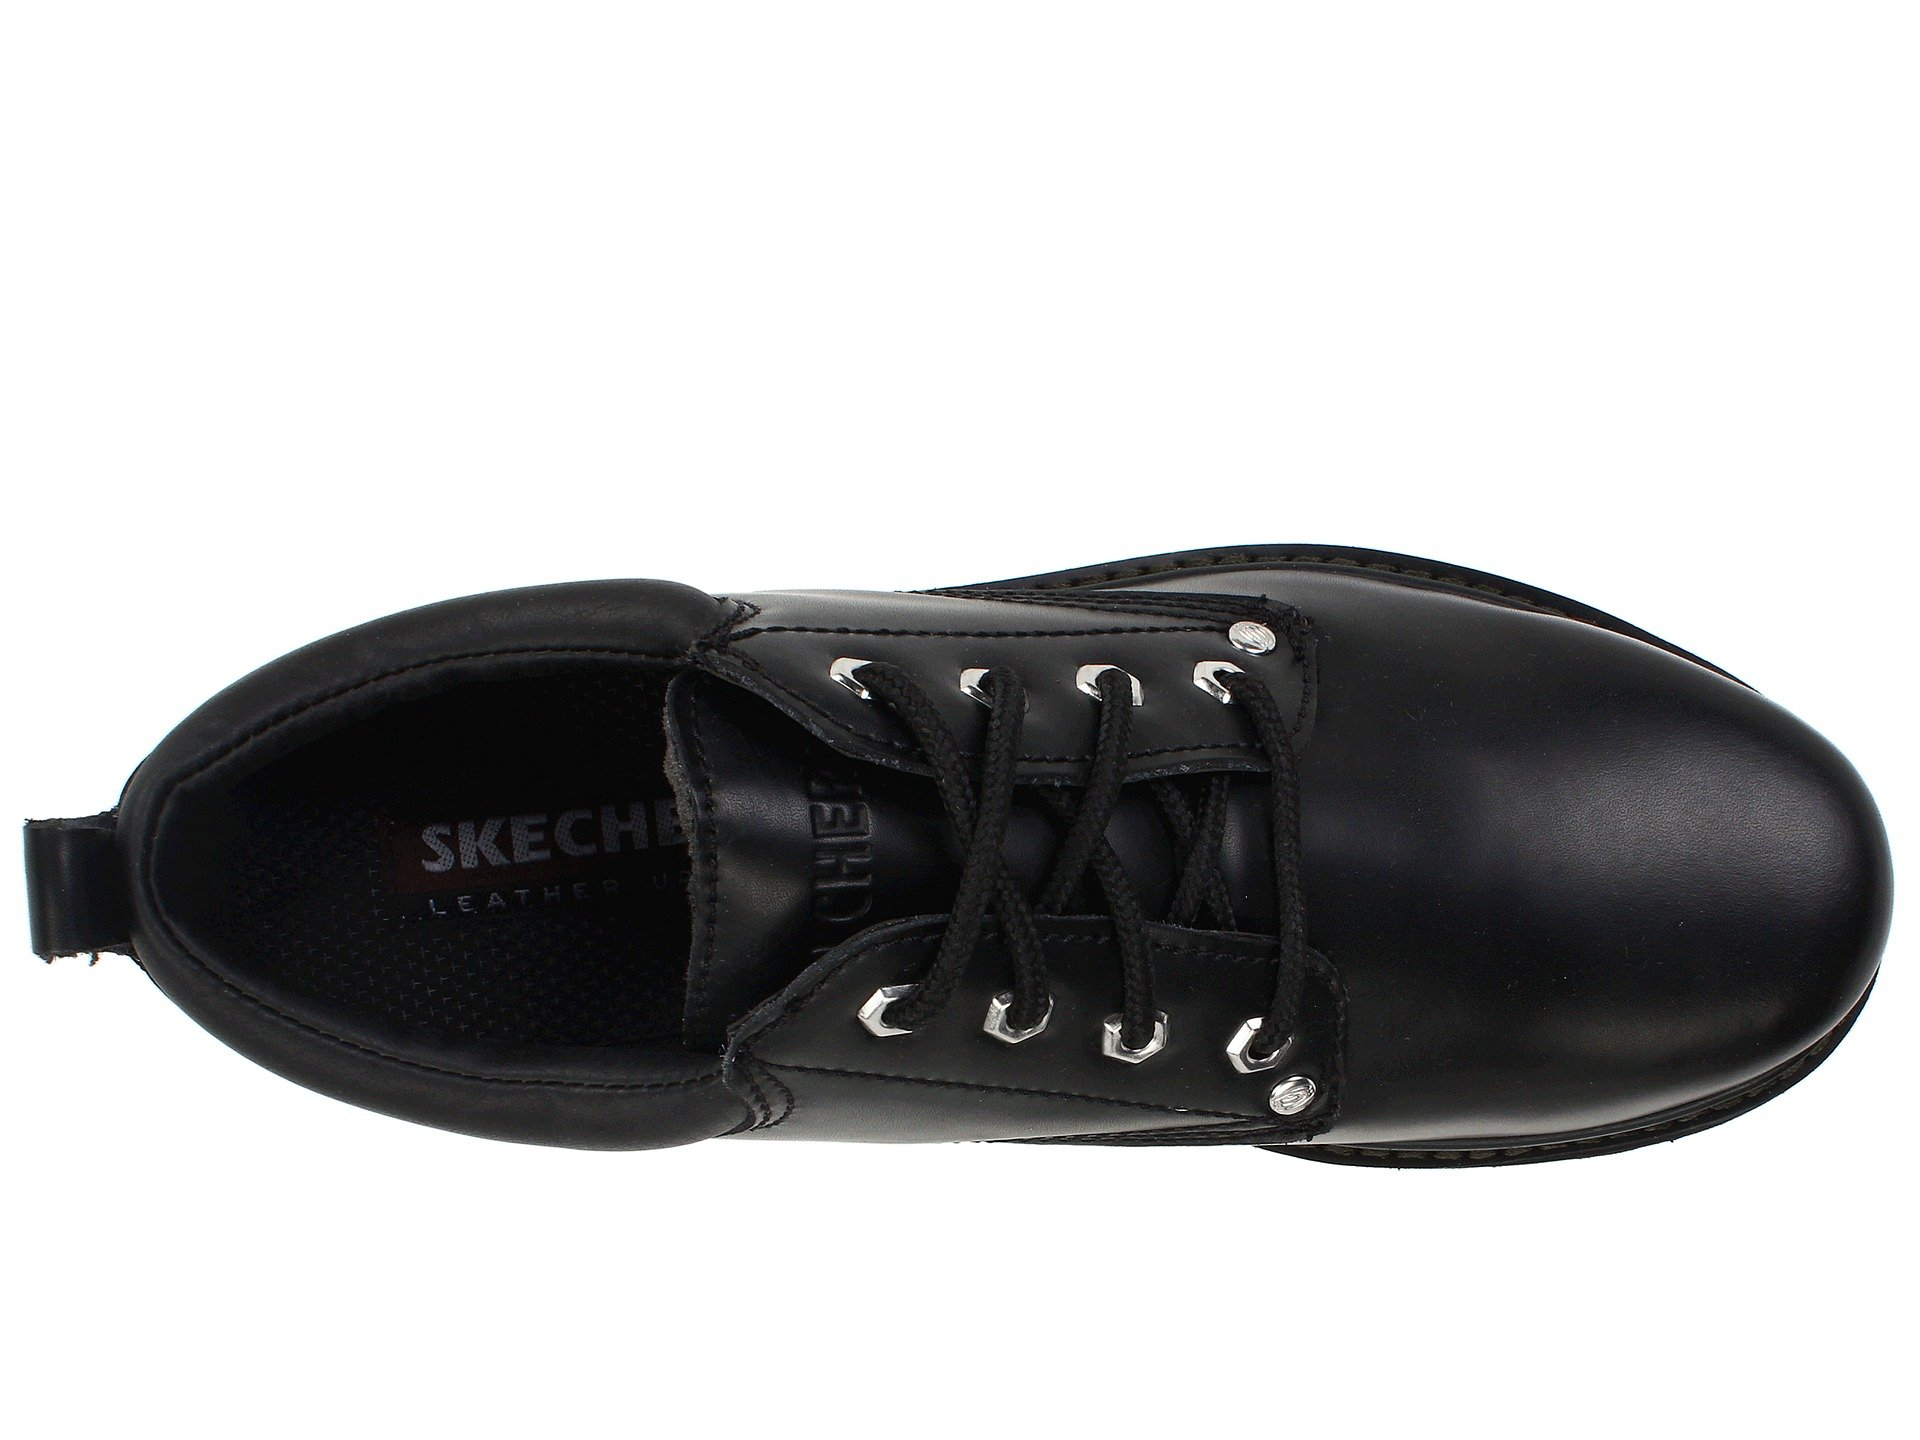 skechers alley cat